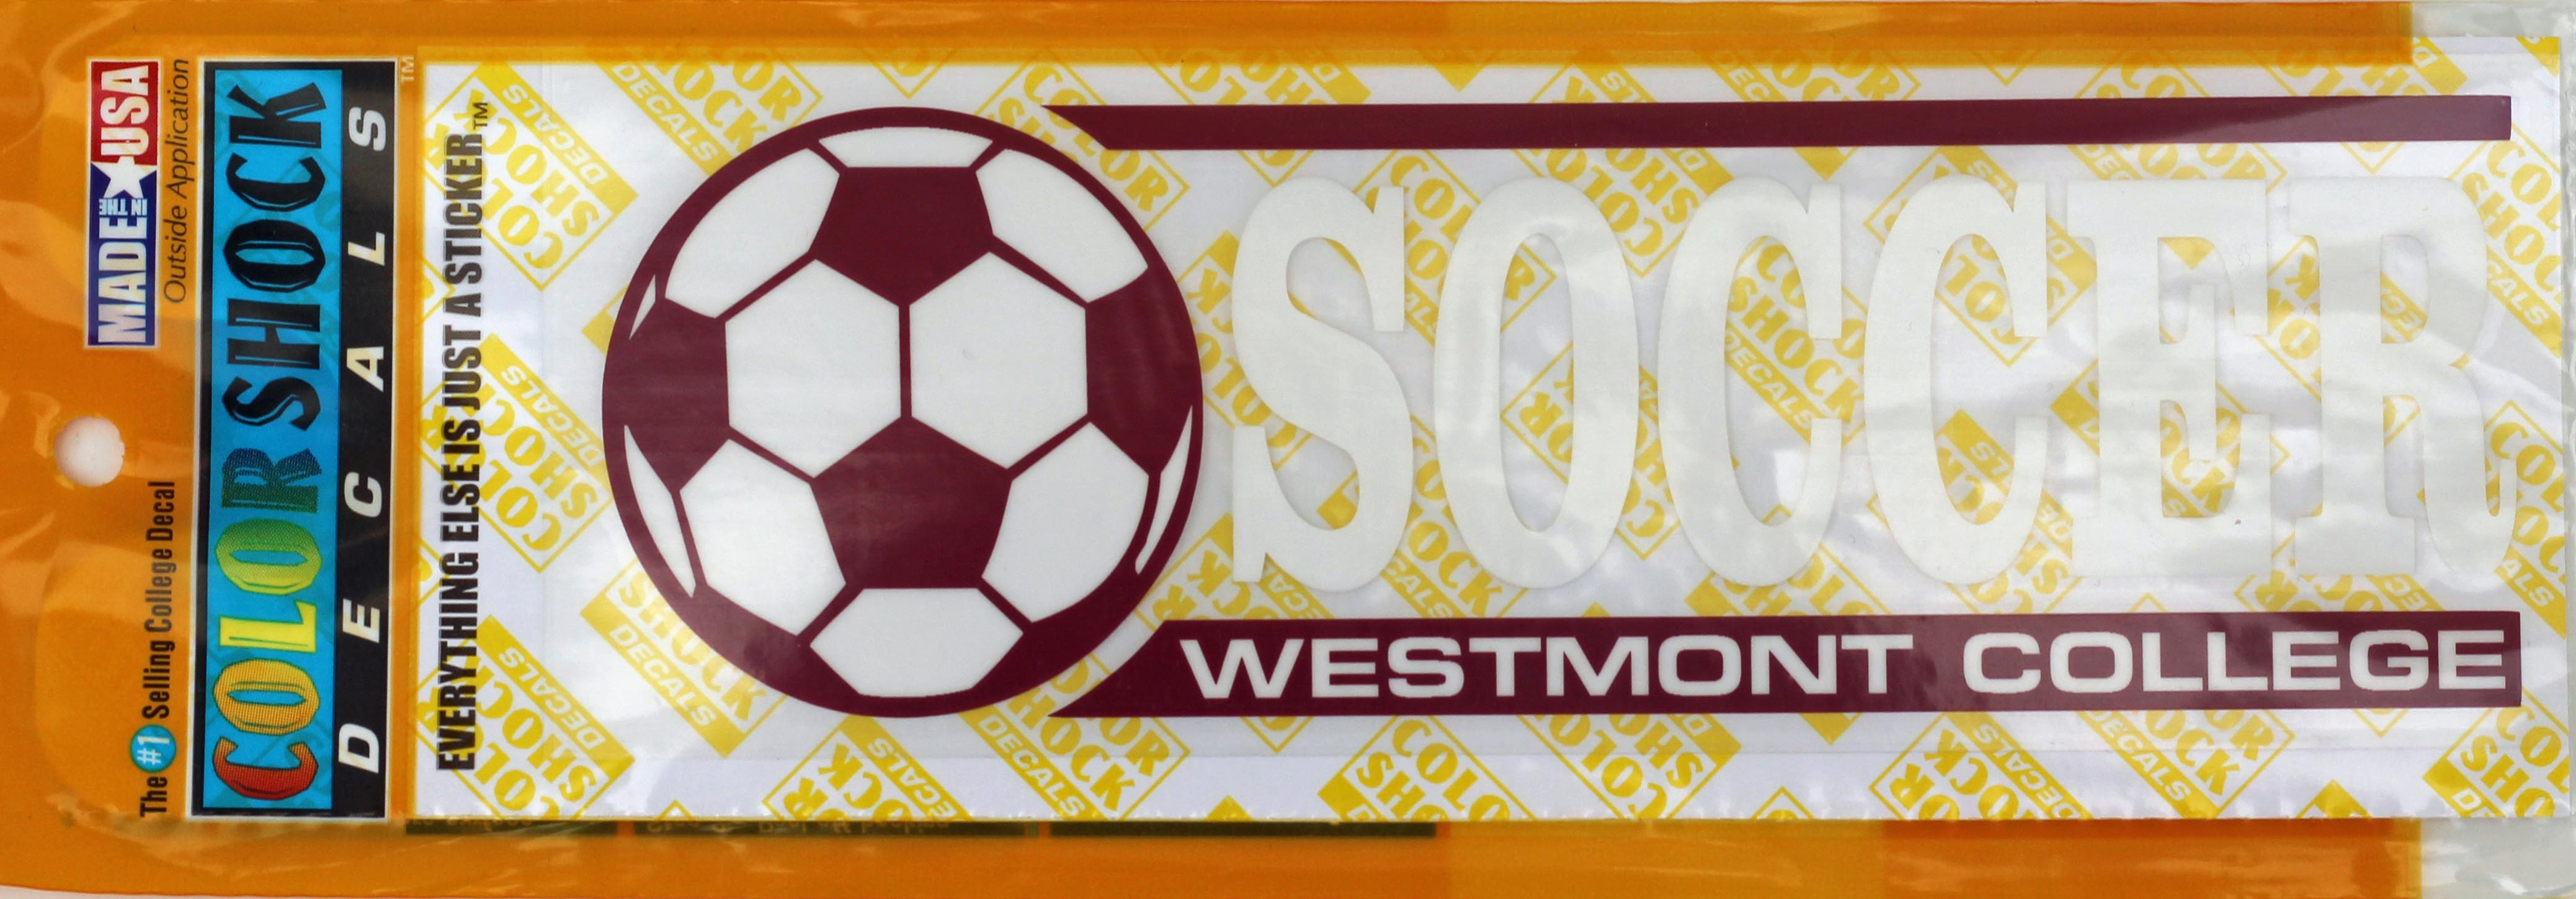 Image for the Color Shock Soccer Decal product